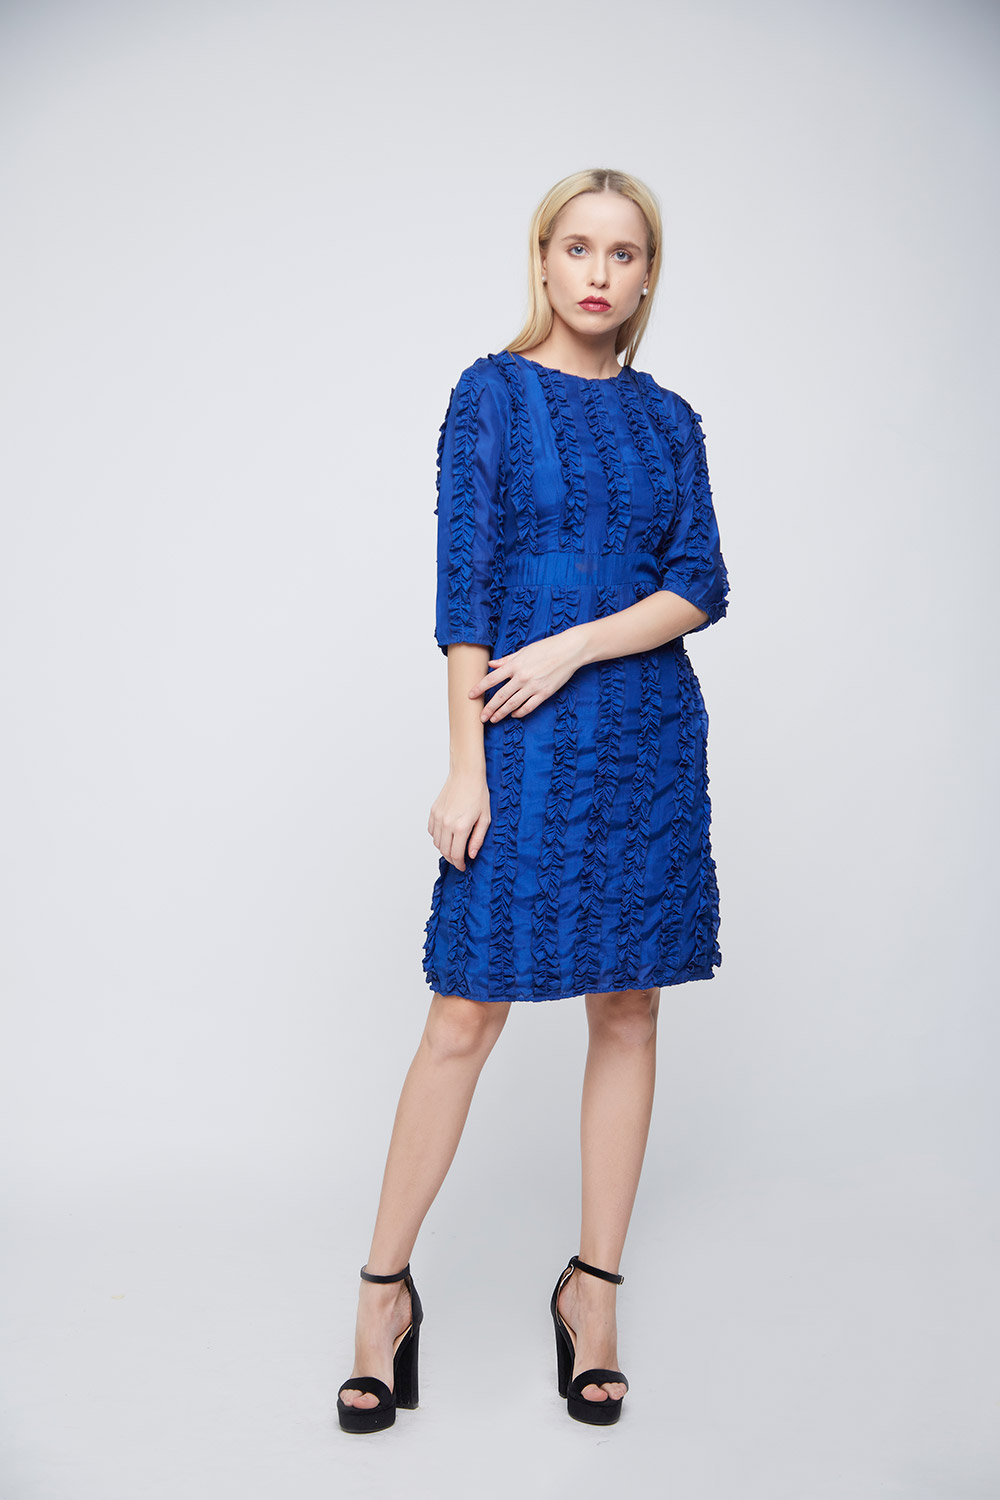 Ruffle Blue Dress -3